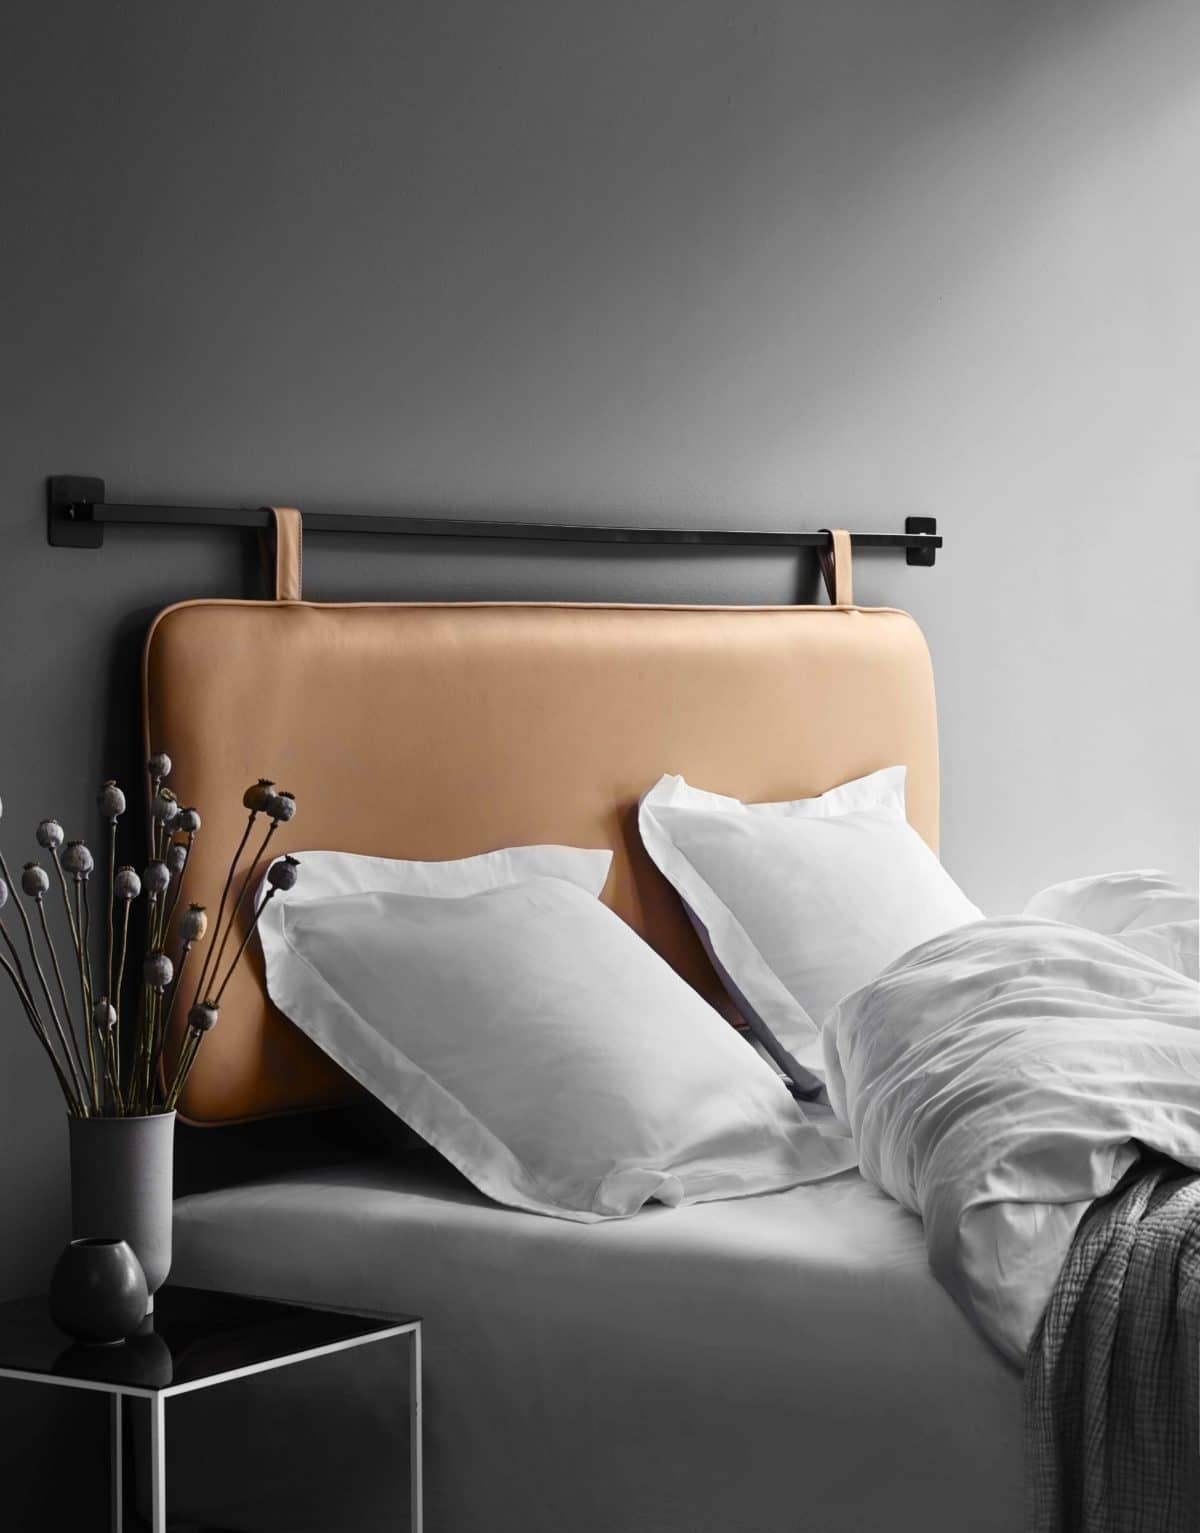 The M headboard - cognac aniline leather